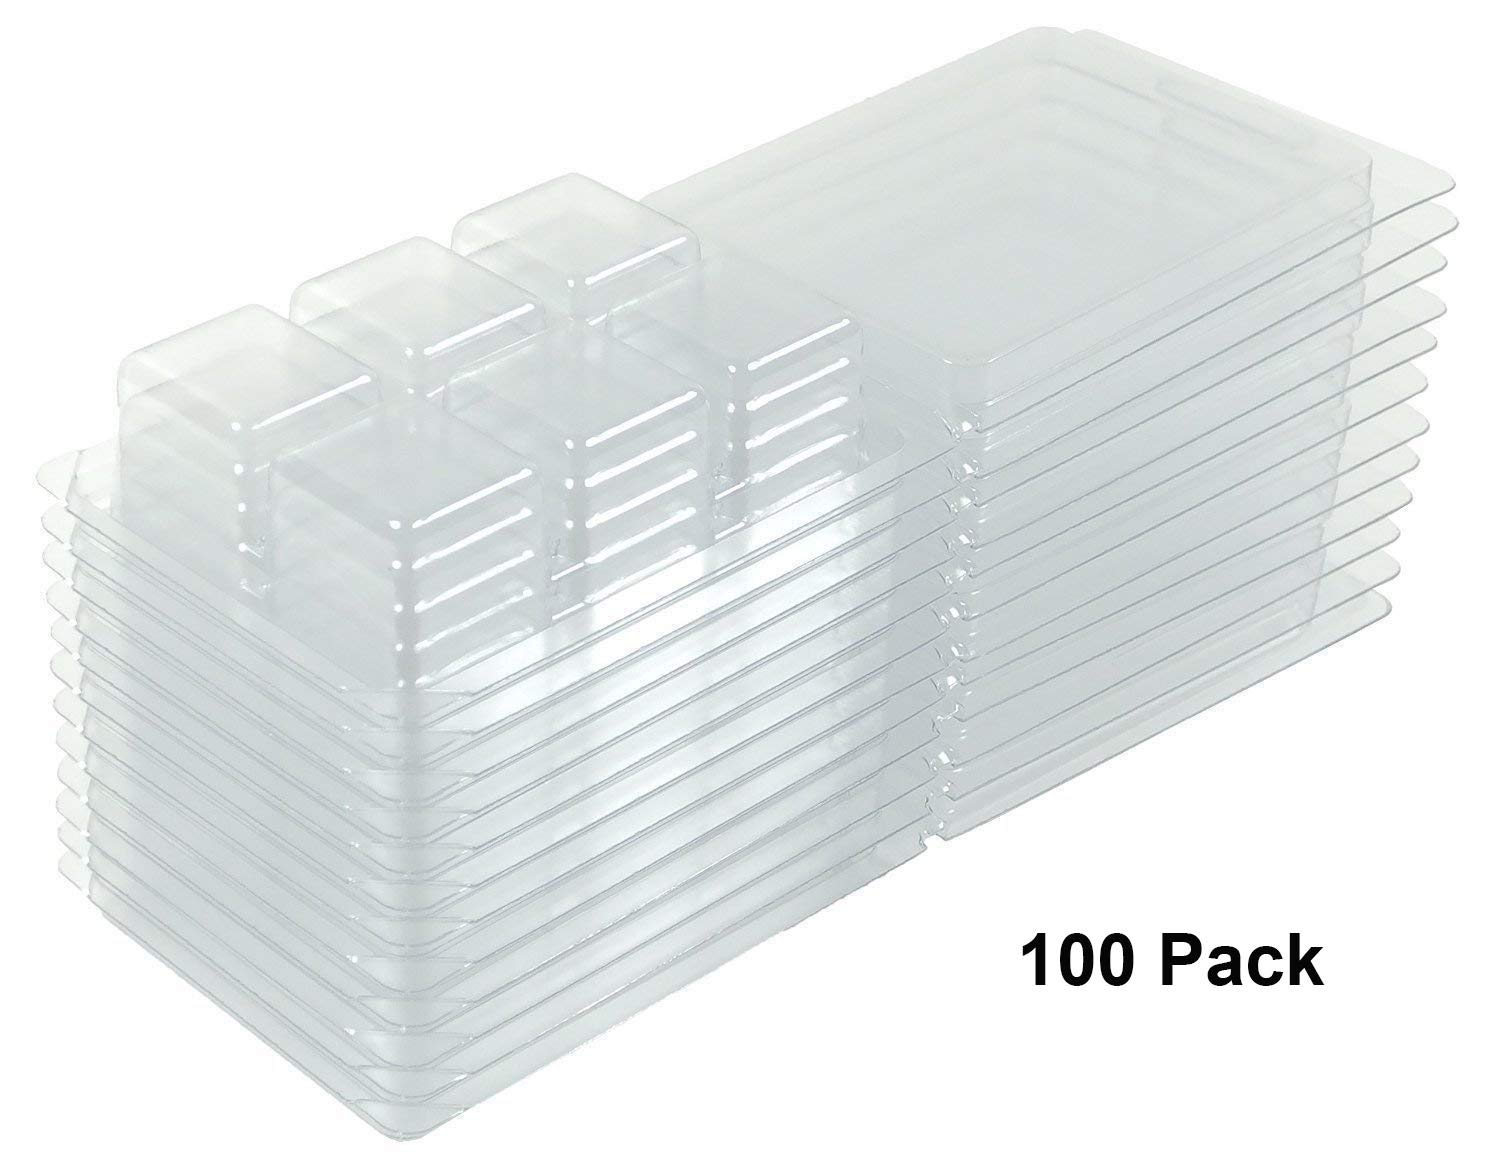 Bettli Clamshell Molds and Packaging 6-Cavity for Candle and Soap Making - 6 Large 1 Ounce Cells - Holds 2.75 oz Capacity - Quantity 100 Pack